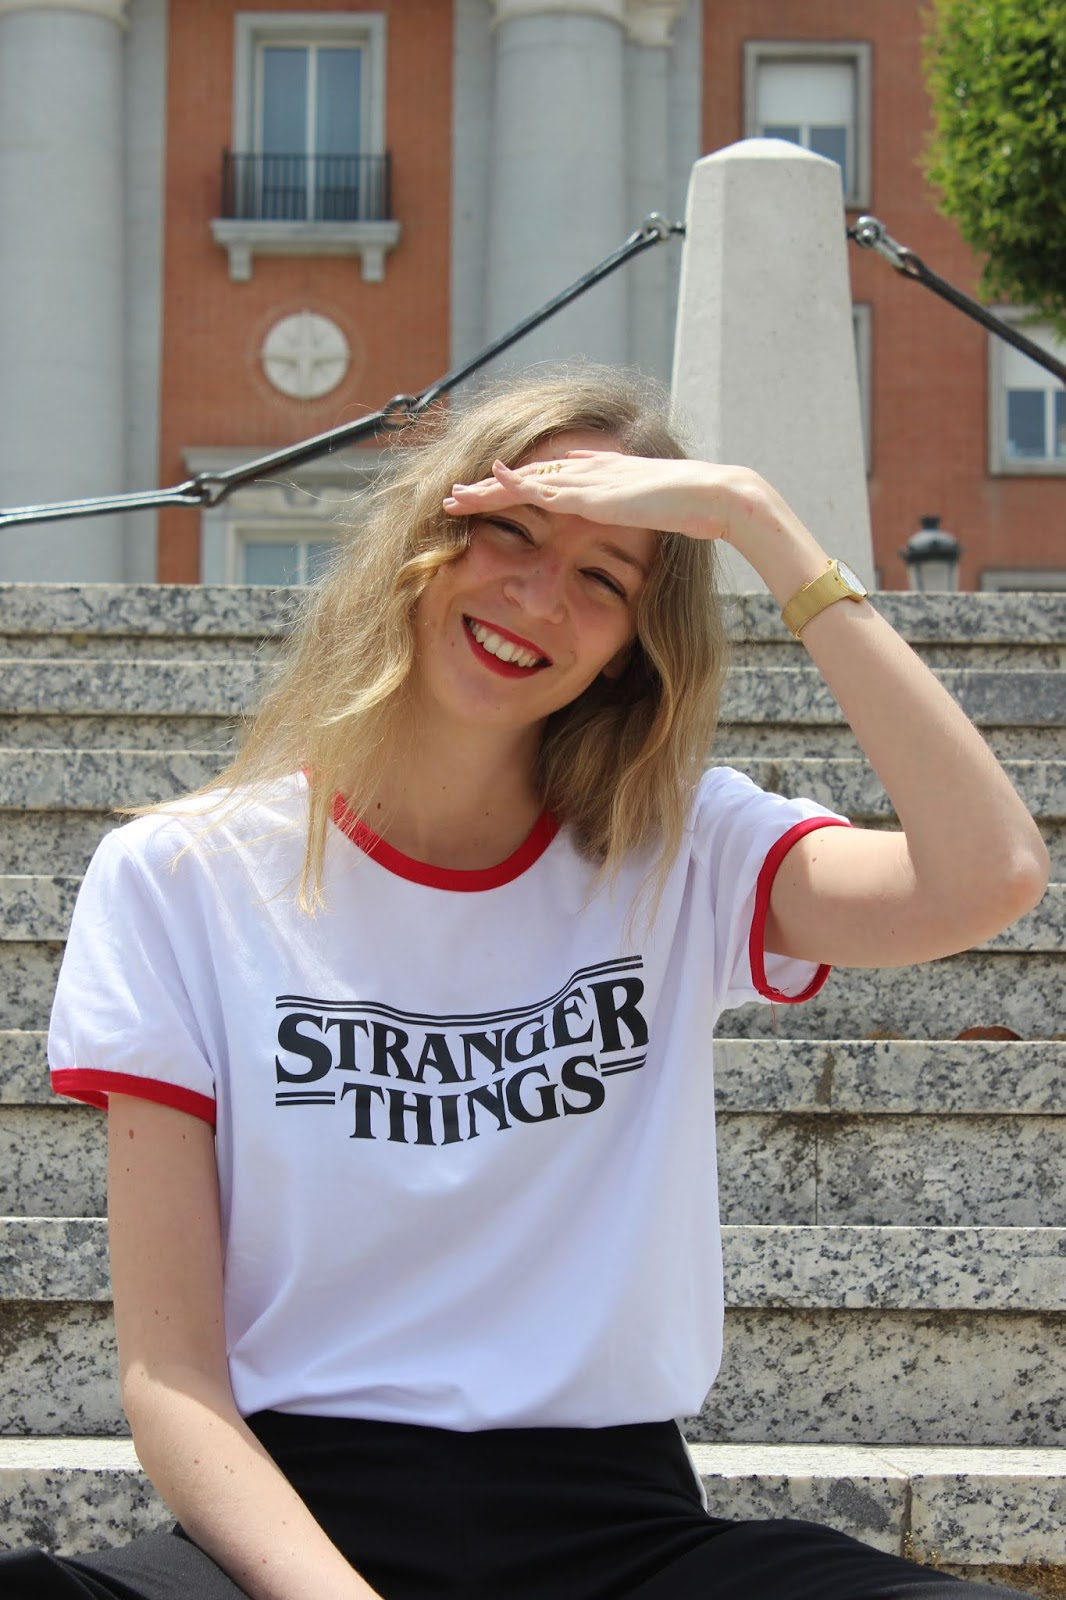 stranger-things-shein-t-shirt-netflix